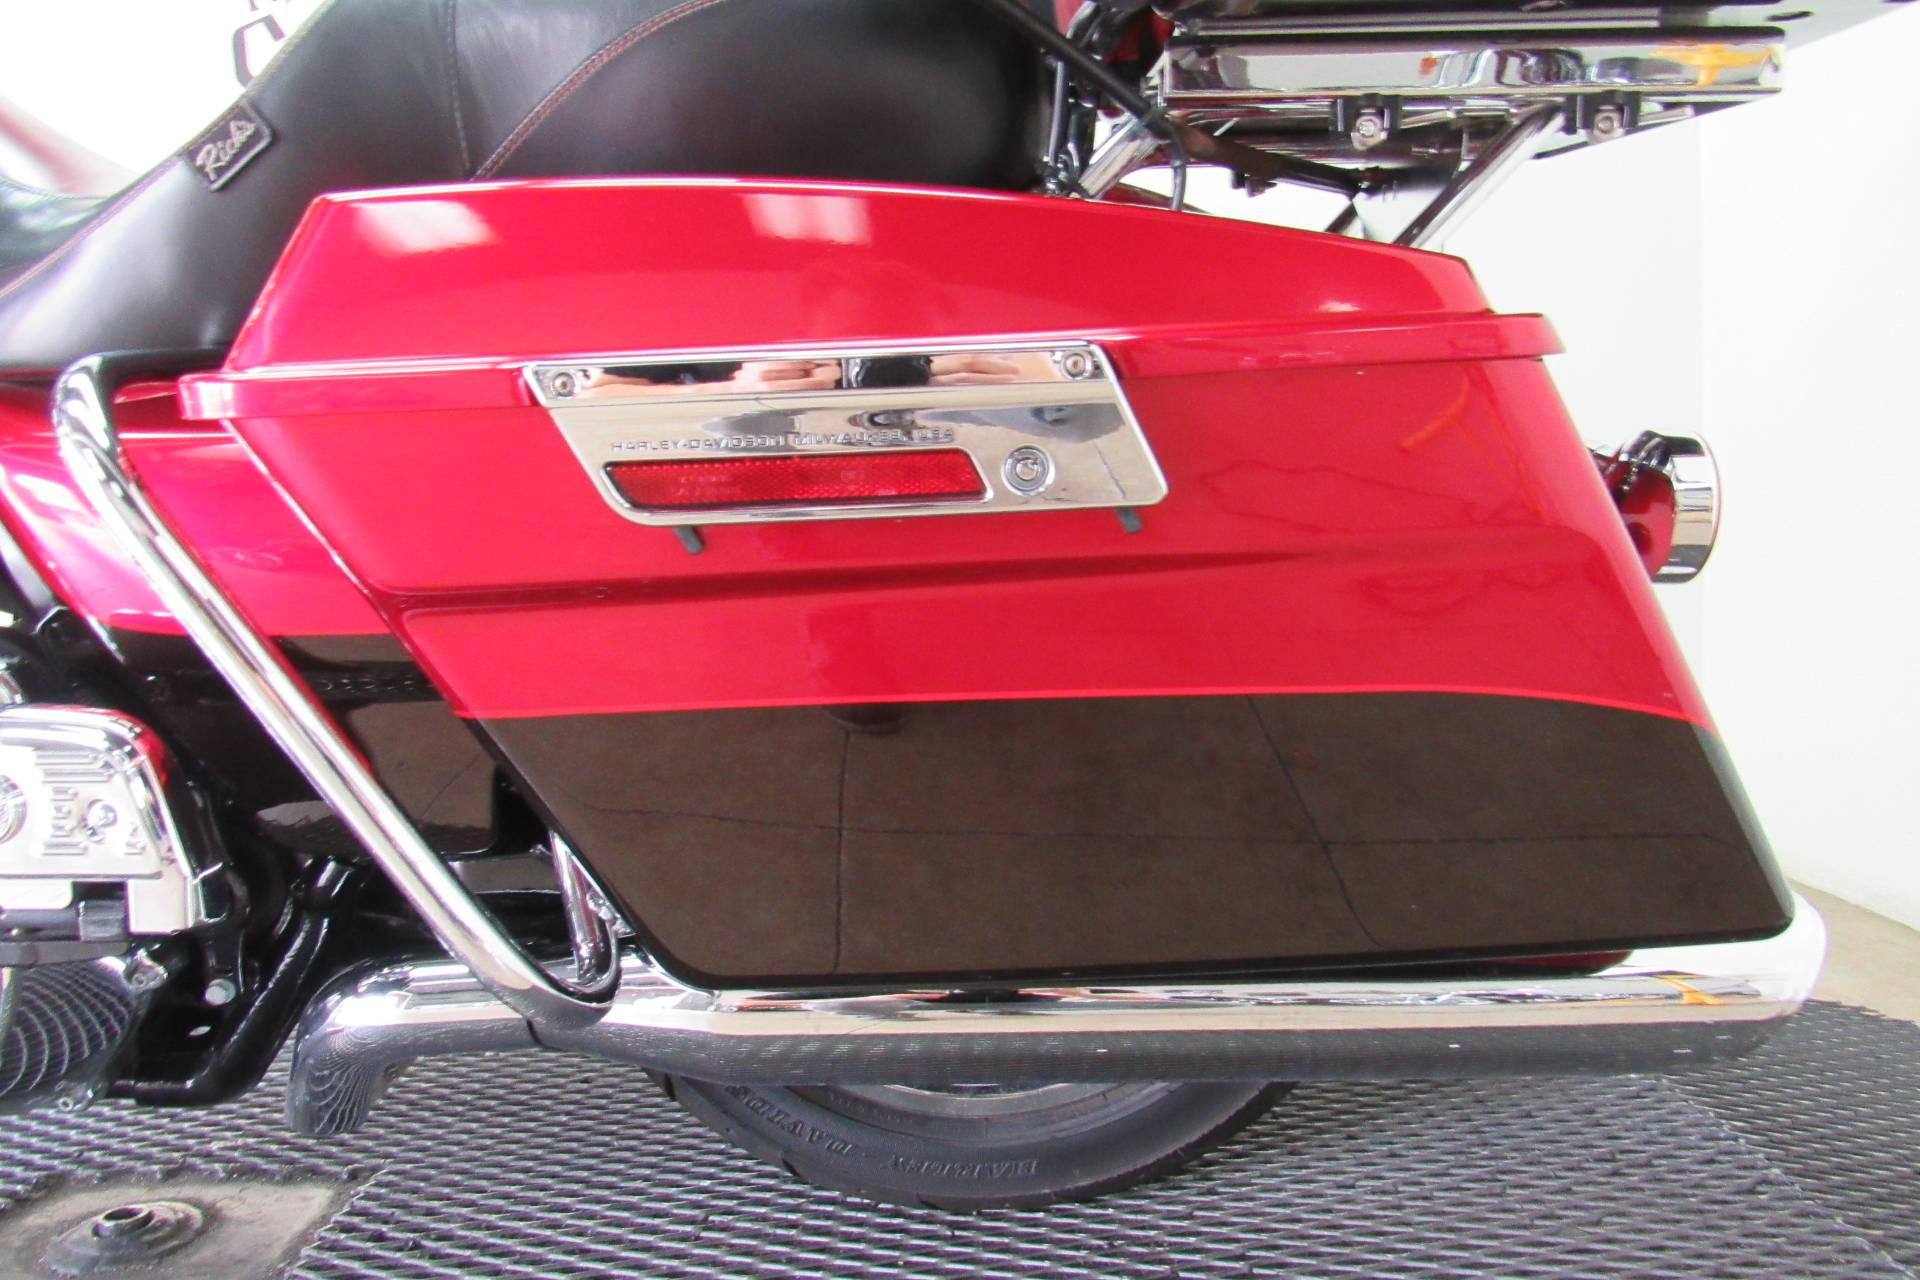 2012 Harley-Davidson Electra Glide® Ultra Limited in Temecula, California - Photo 31